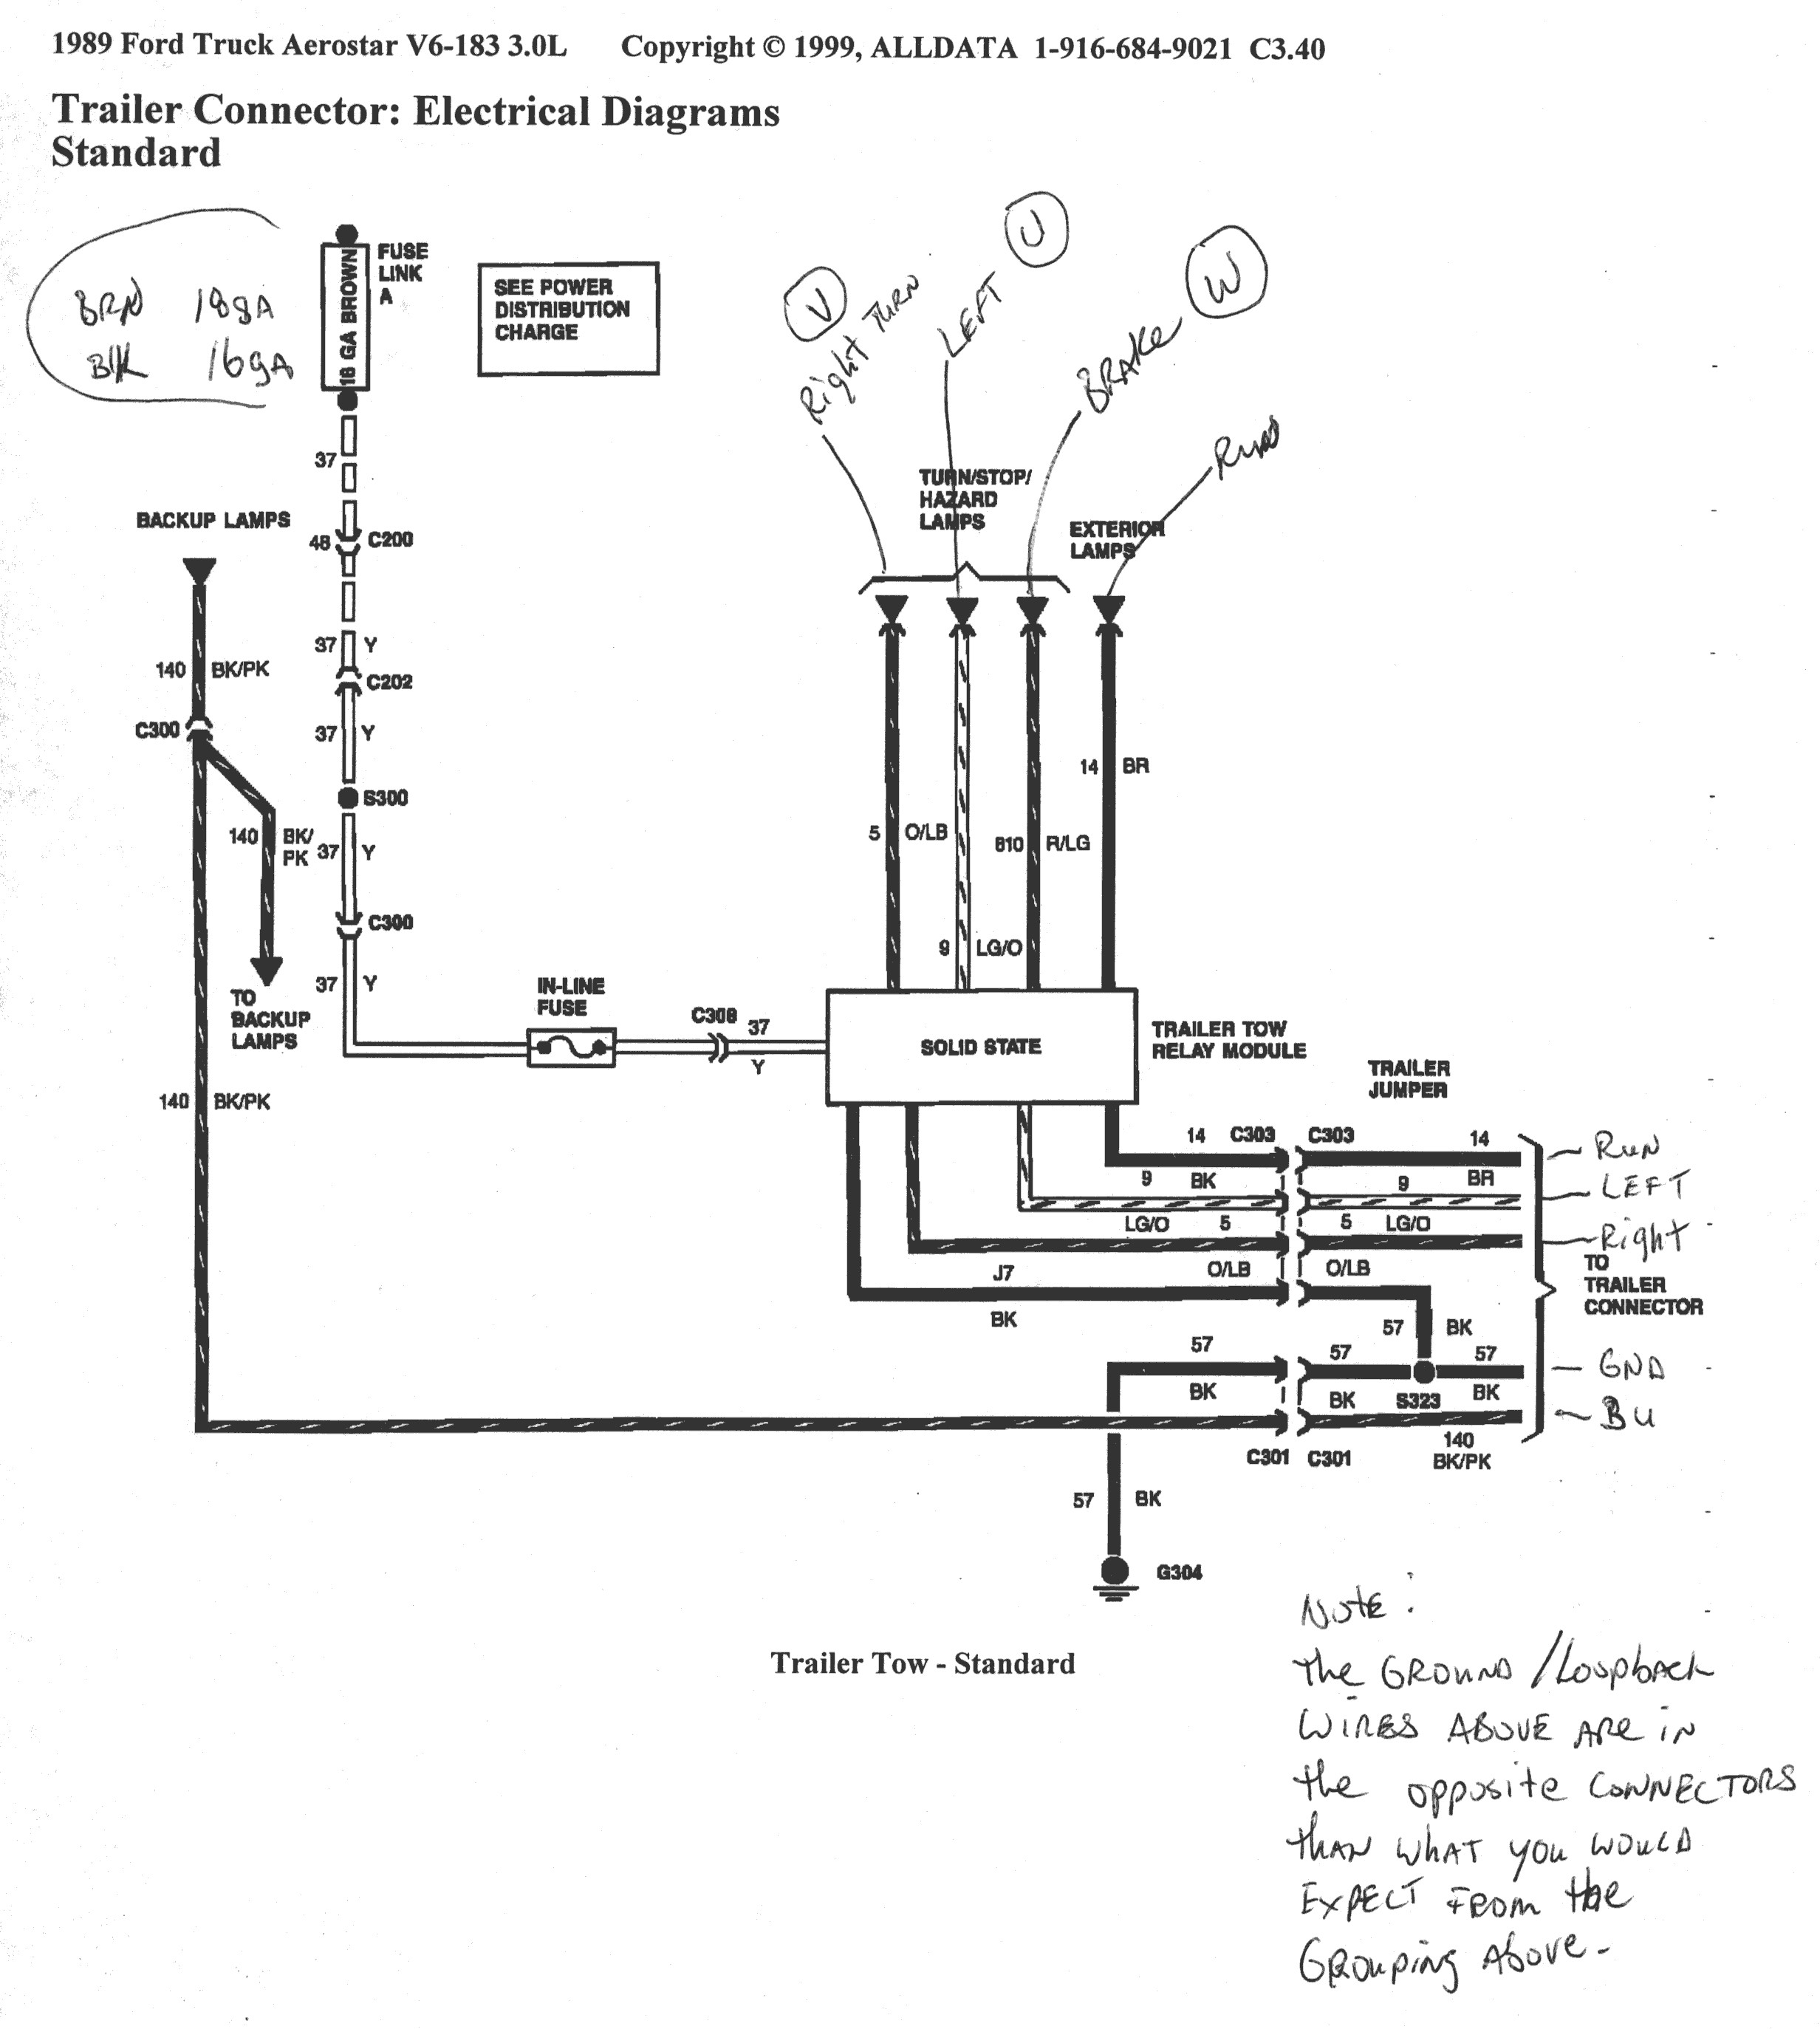 92 Explorer Radio Wiring Diagram - Wiring Diagrams on